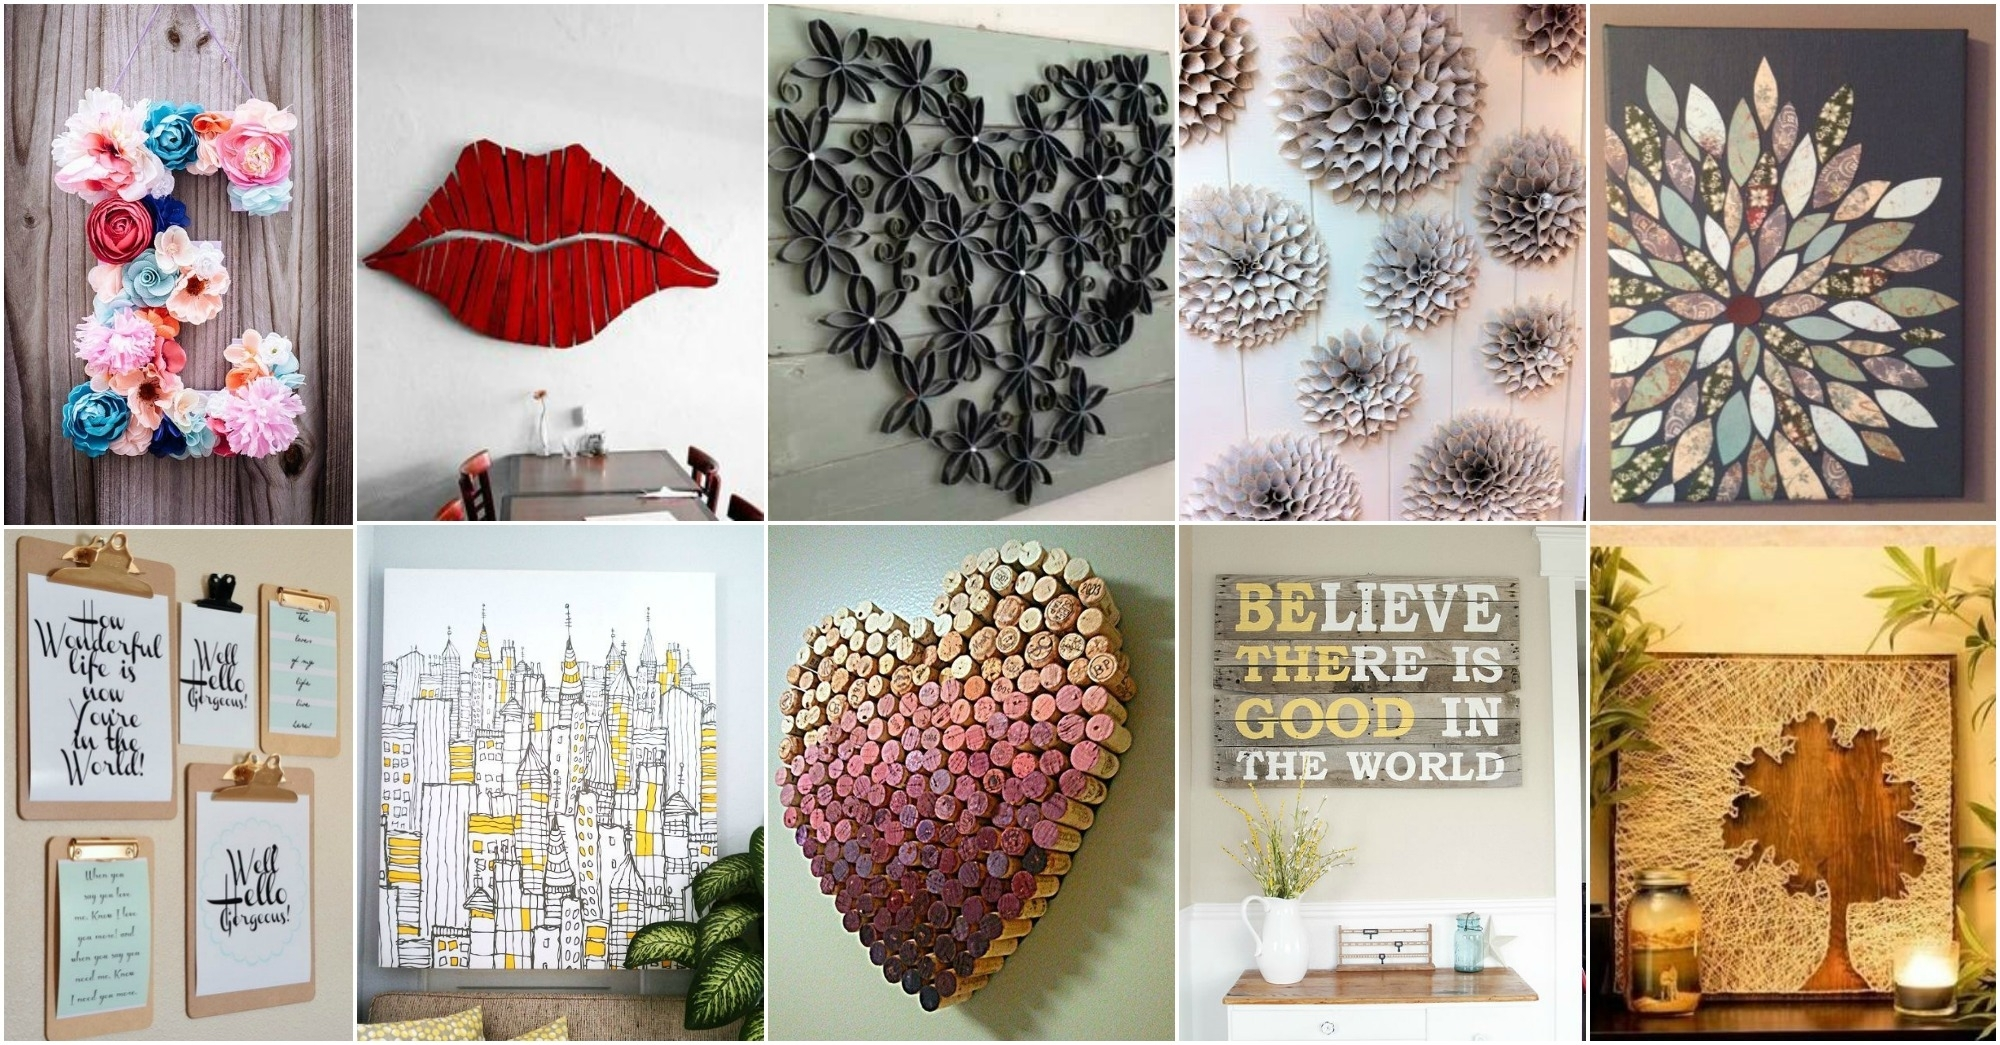 20 Diy Innovative Wall Art Decor Ideas That Will Leave You Speechless Regarding 2018 Art Wall Decor (Gallery 13 of 20)